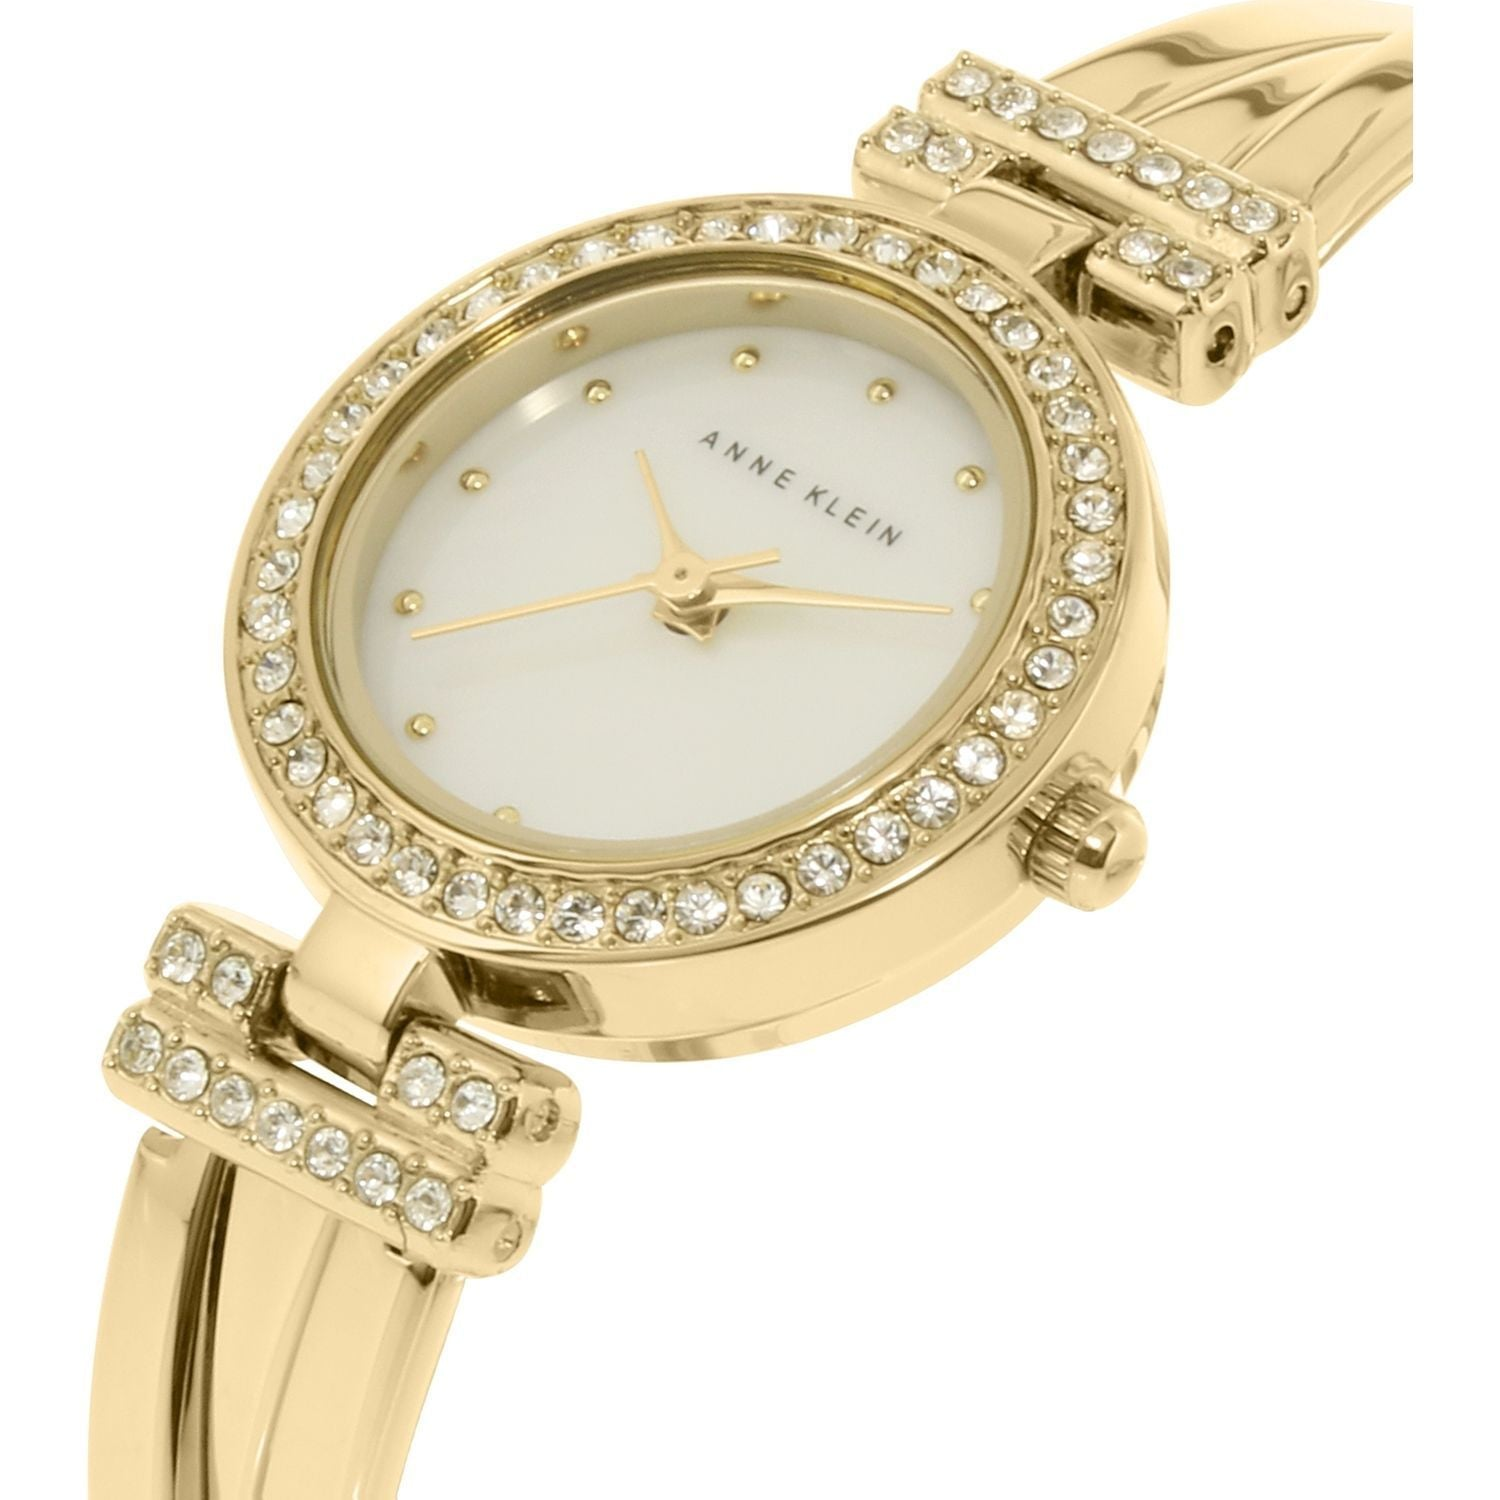 Anne Klein AK-1868GBST Gold-Tone Bangle & Bracelet Set Watch for Women - Watchportal Philippines